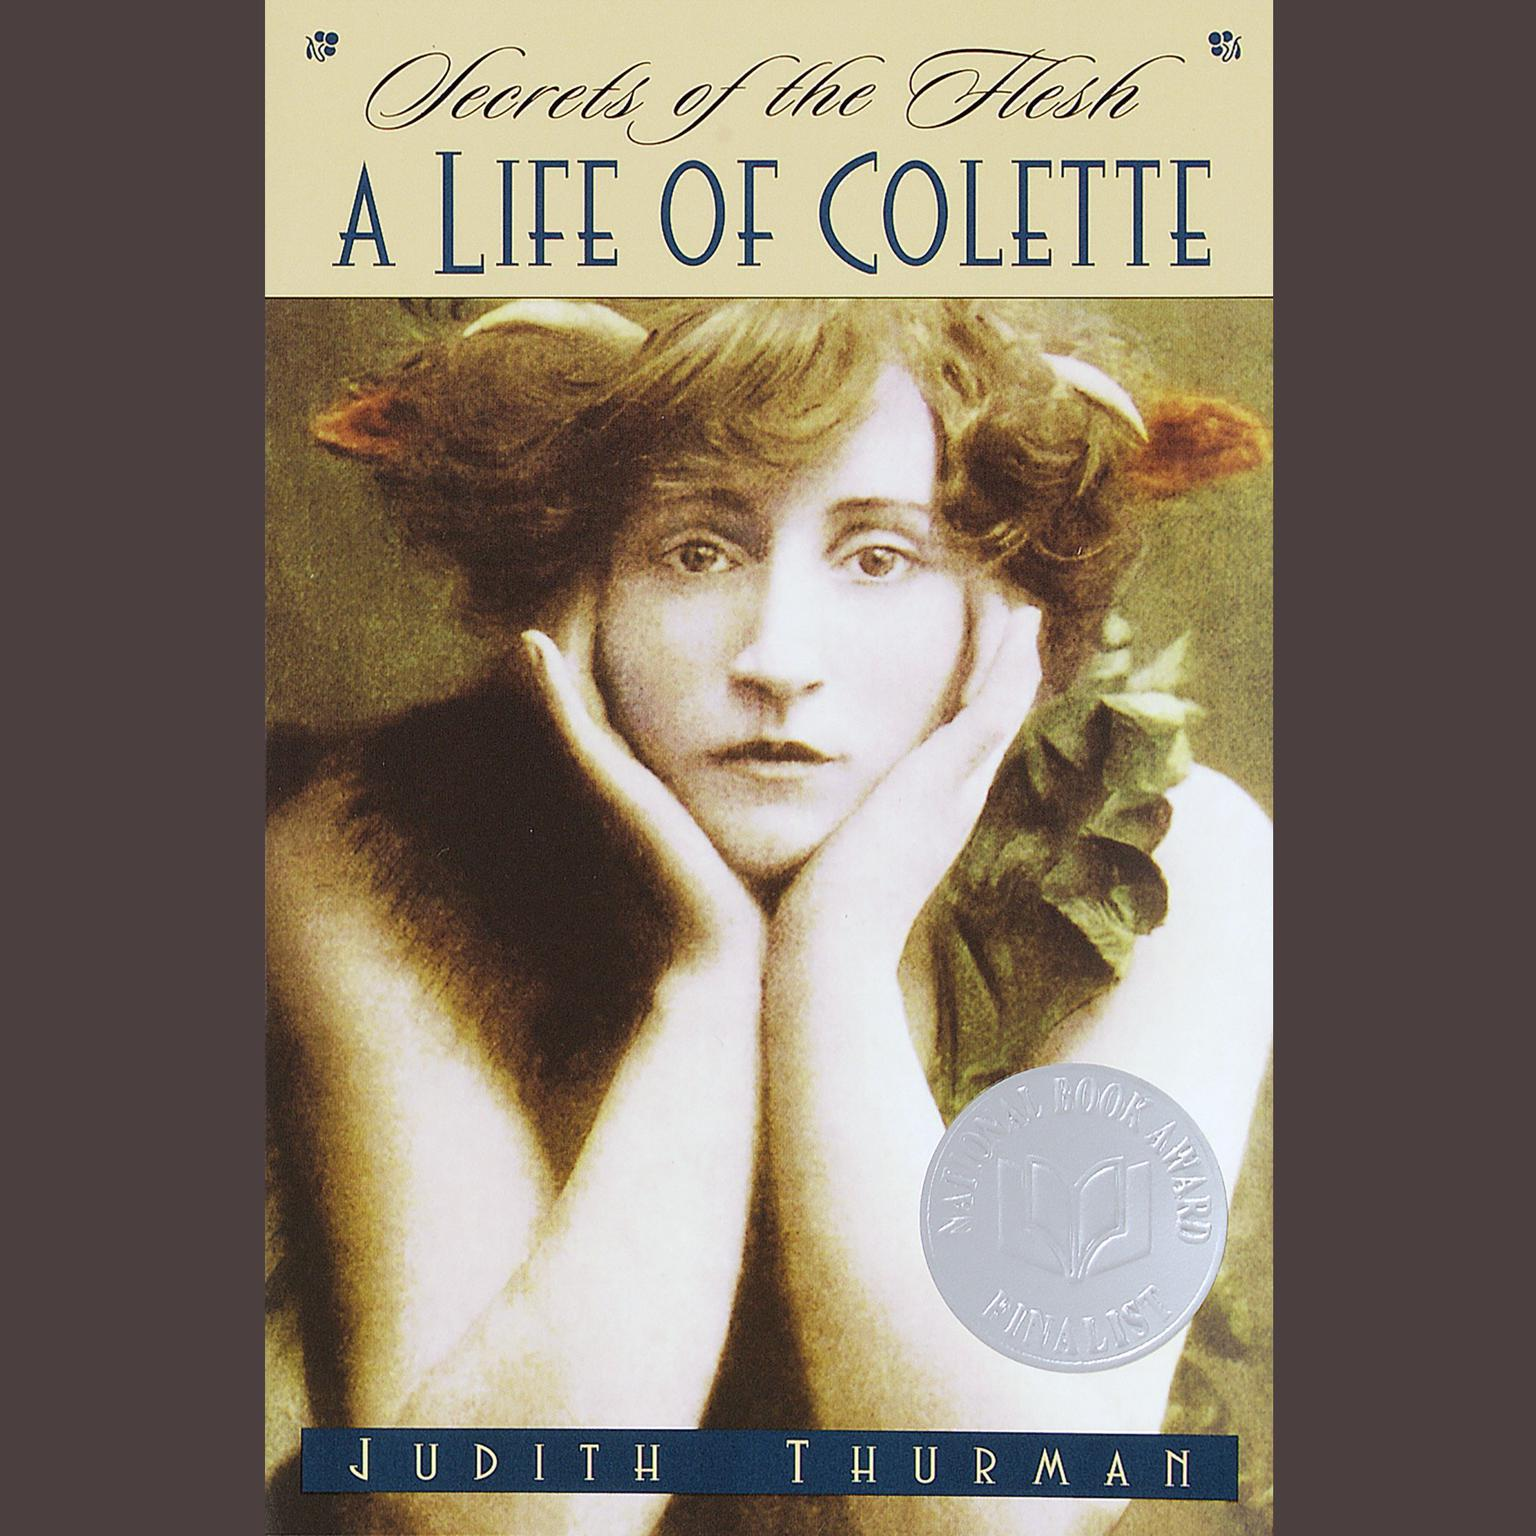 Printable Secrets of the Flesh: A Life of Colette Audiobook Cover Art